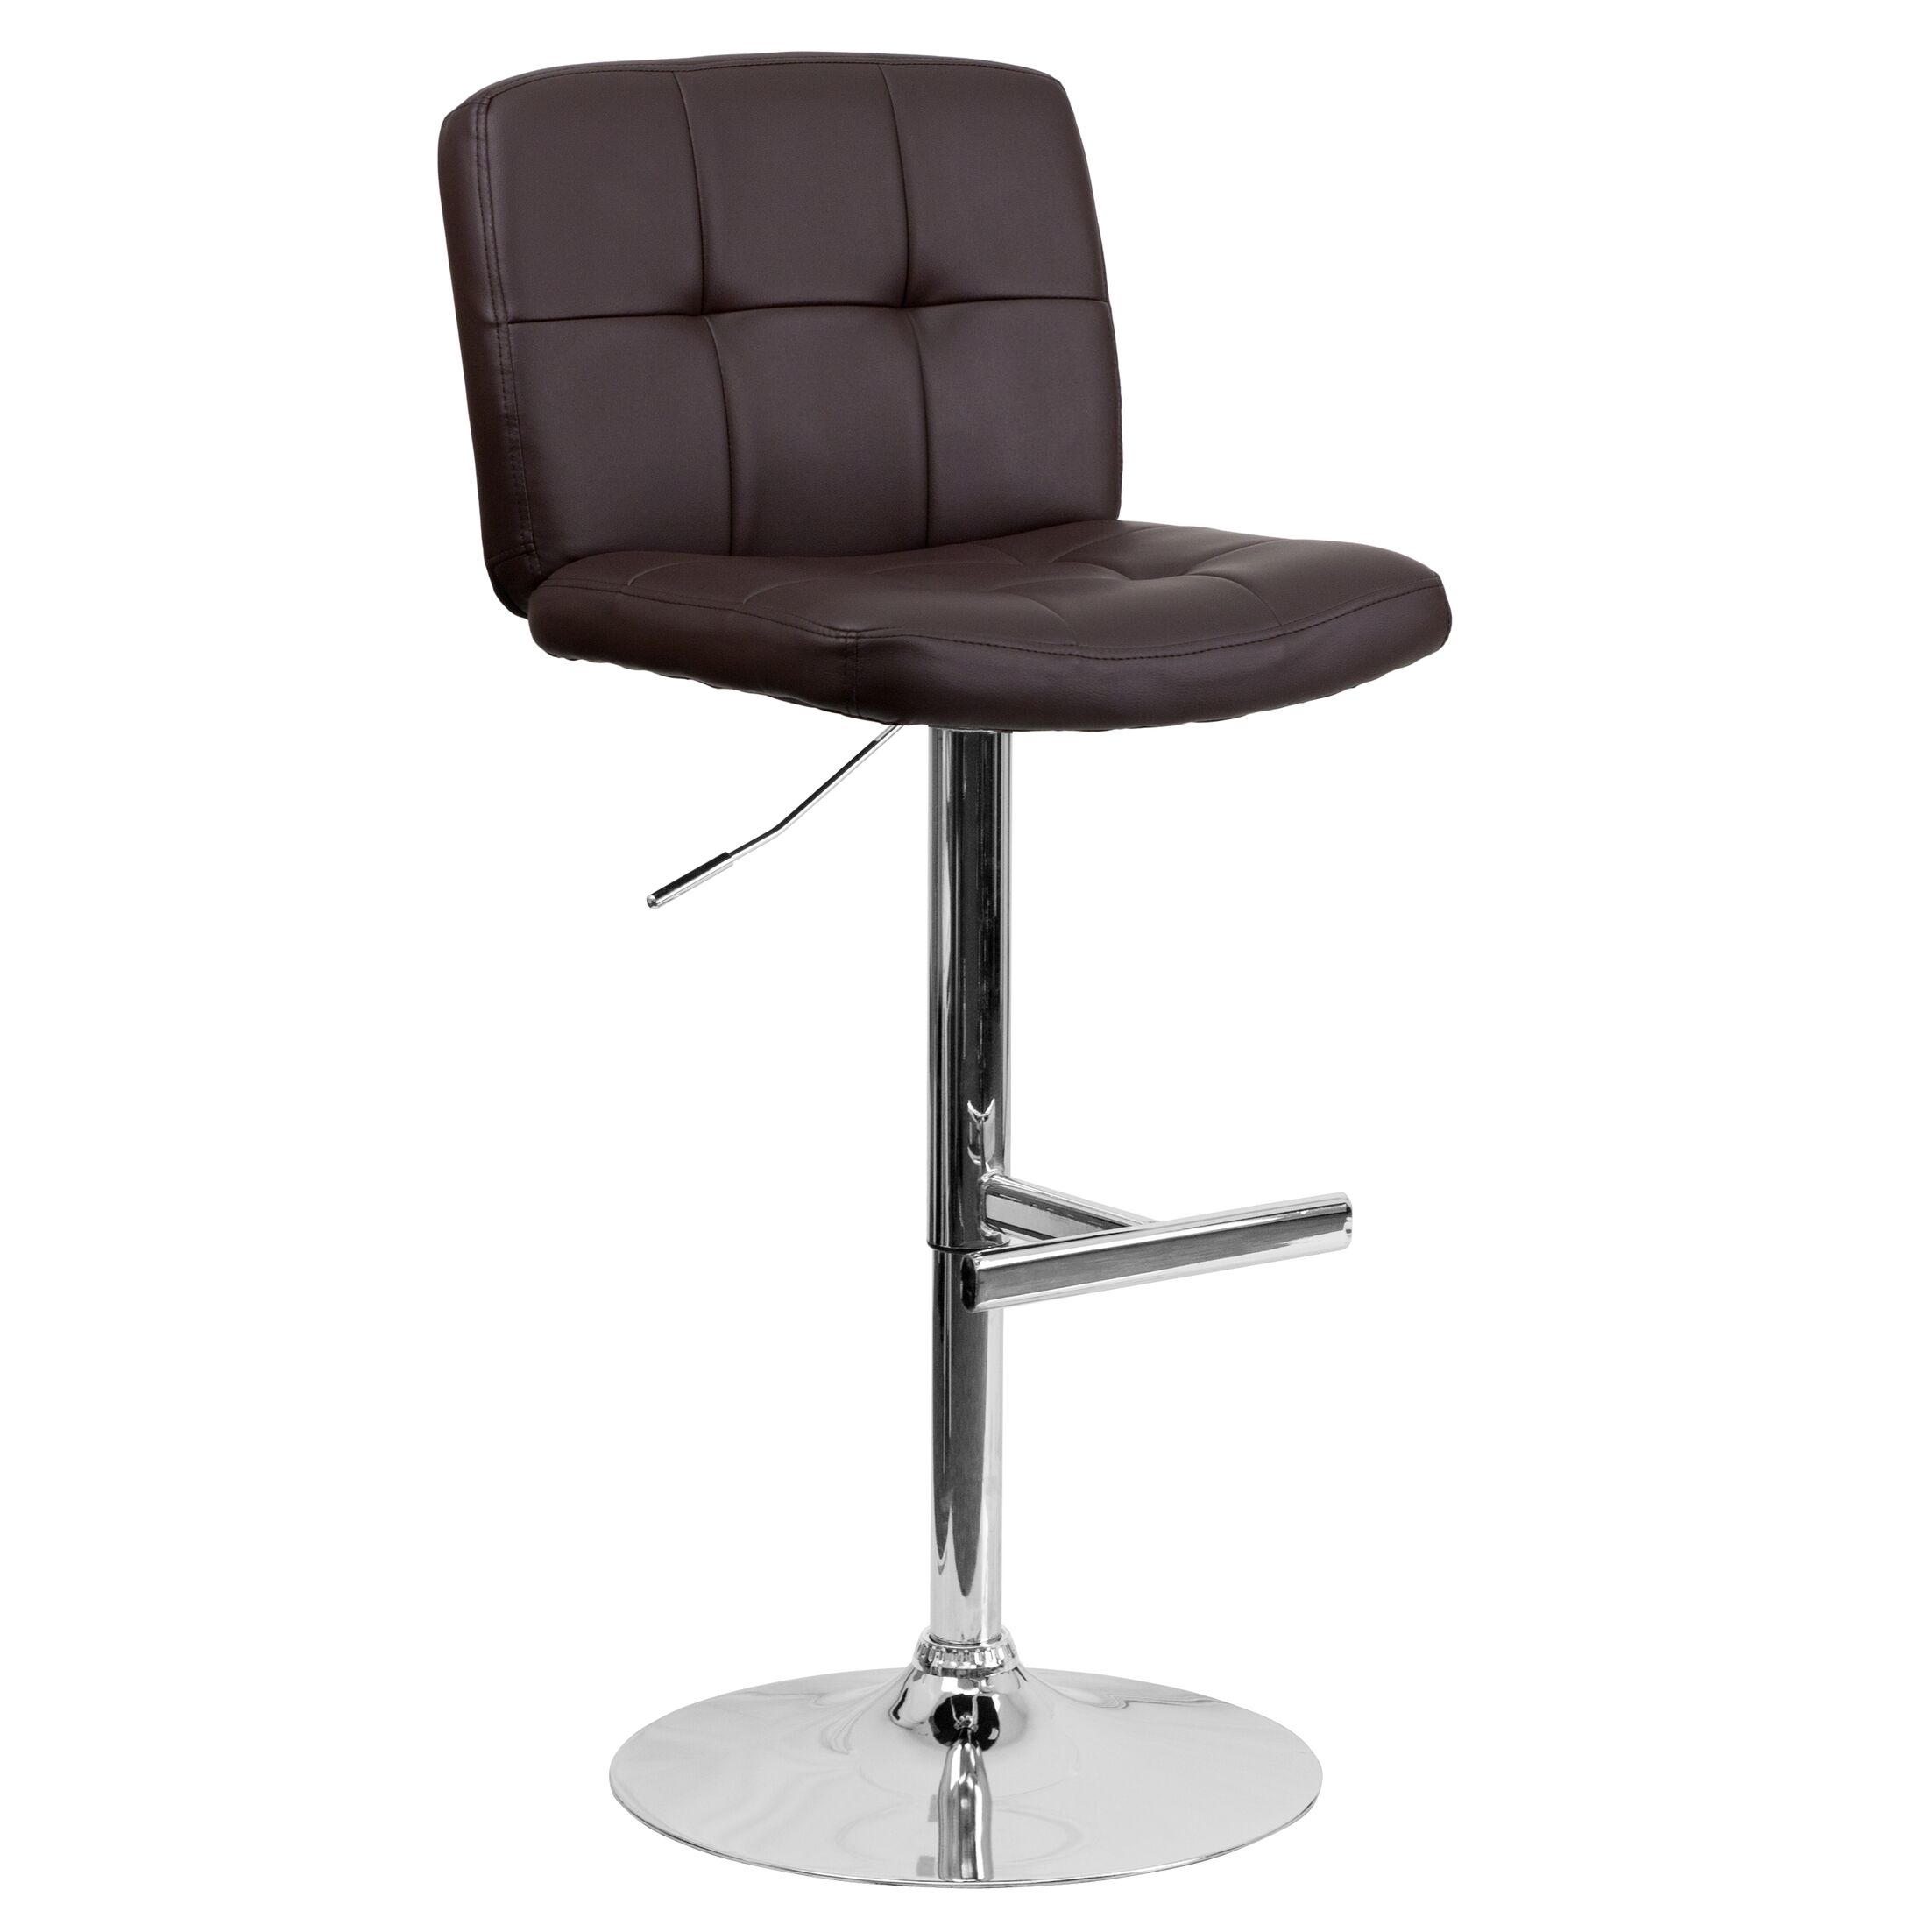 Alandra Adjustable Height Swivel Bar Stool (Set of 2) Upholstery: Brown